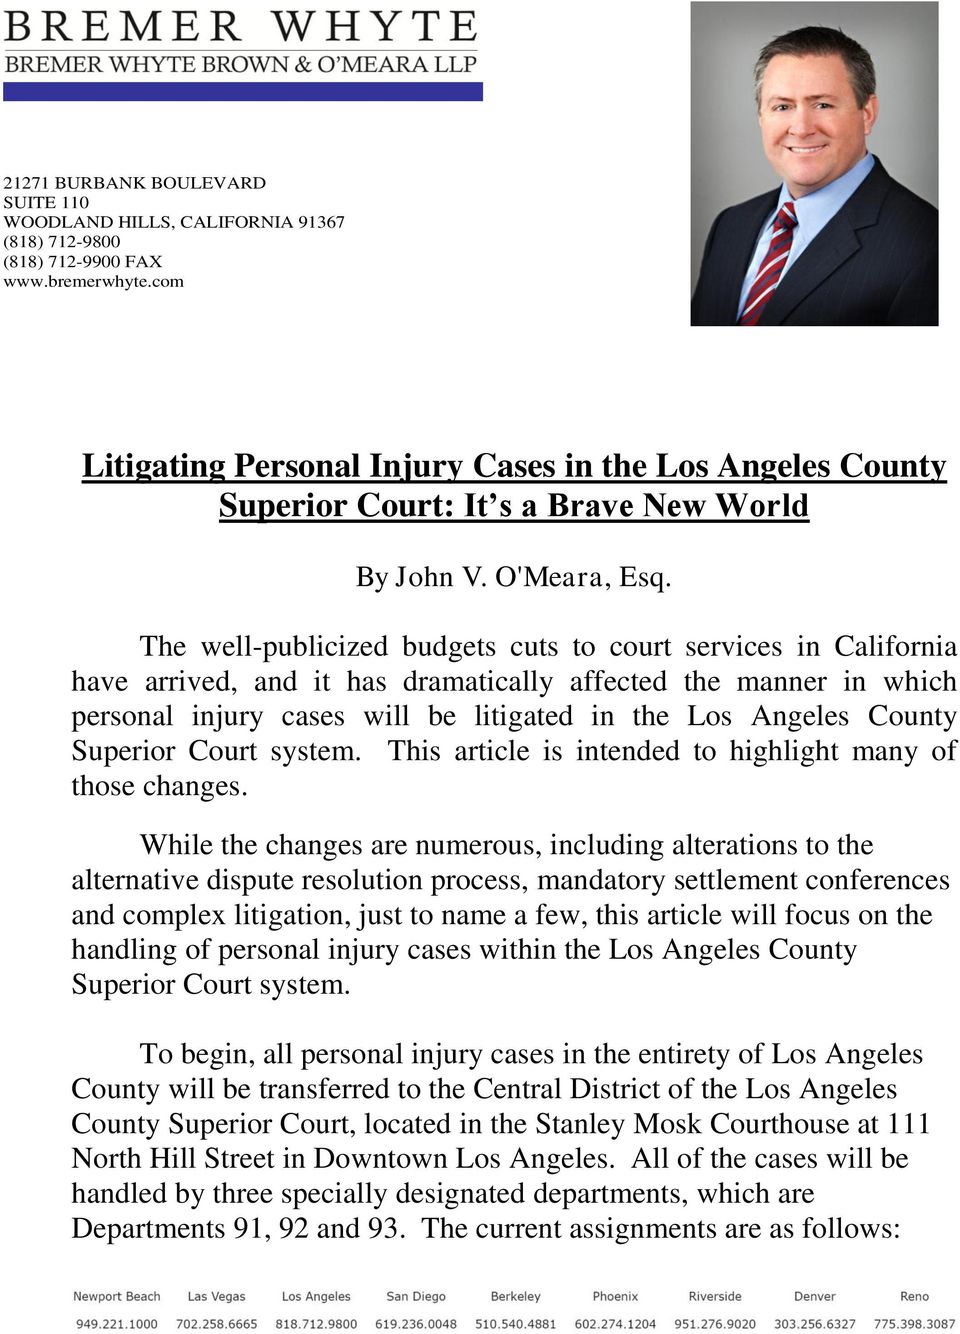 The well-publicized budgets cuts to court services in California have arrived, and it has dramatically affected the manner in which personal injury cases will be litigated in the Los Angeles County